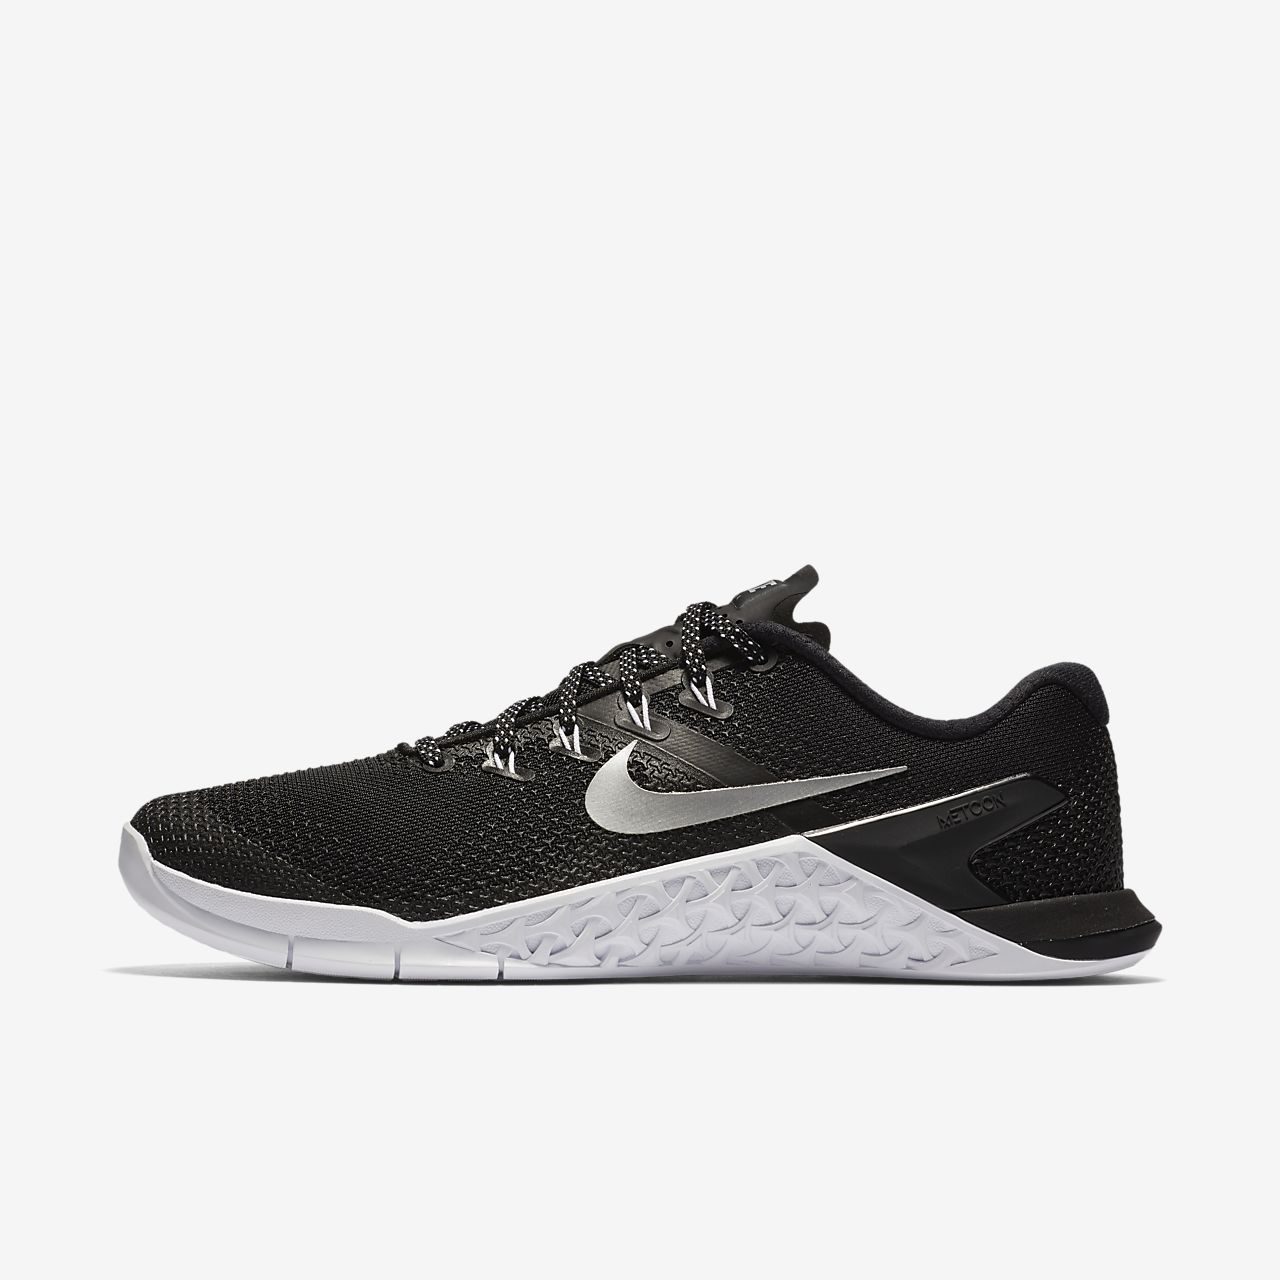 df2e36c782cd ... Weightlifting Shoe Nike Metcon 4 Women s Cross Training